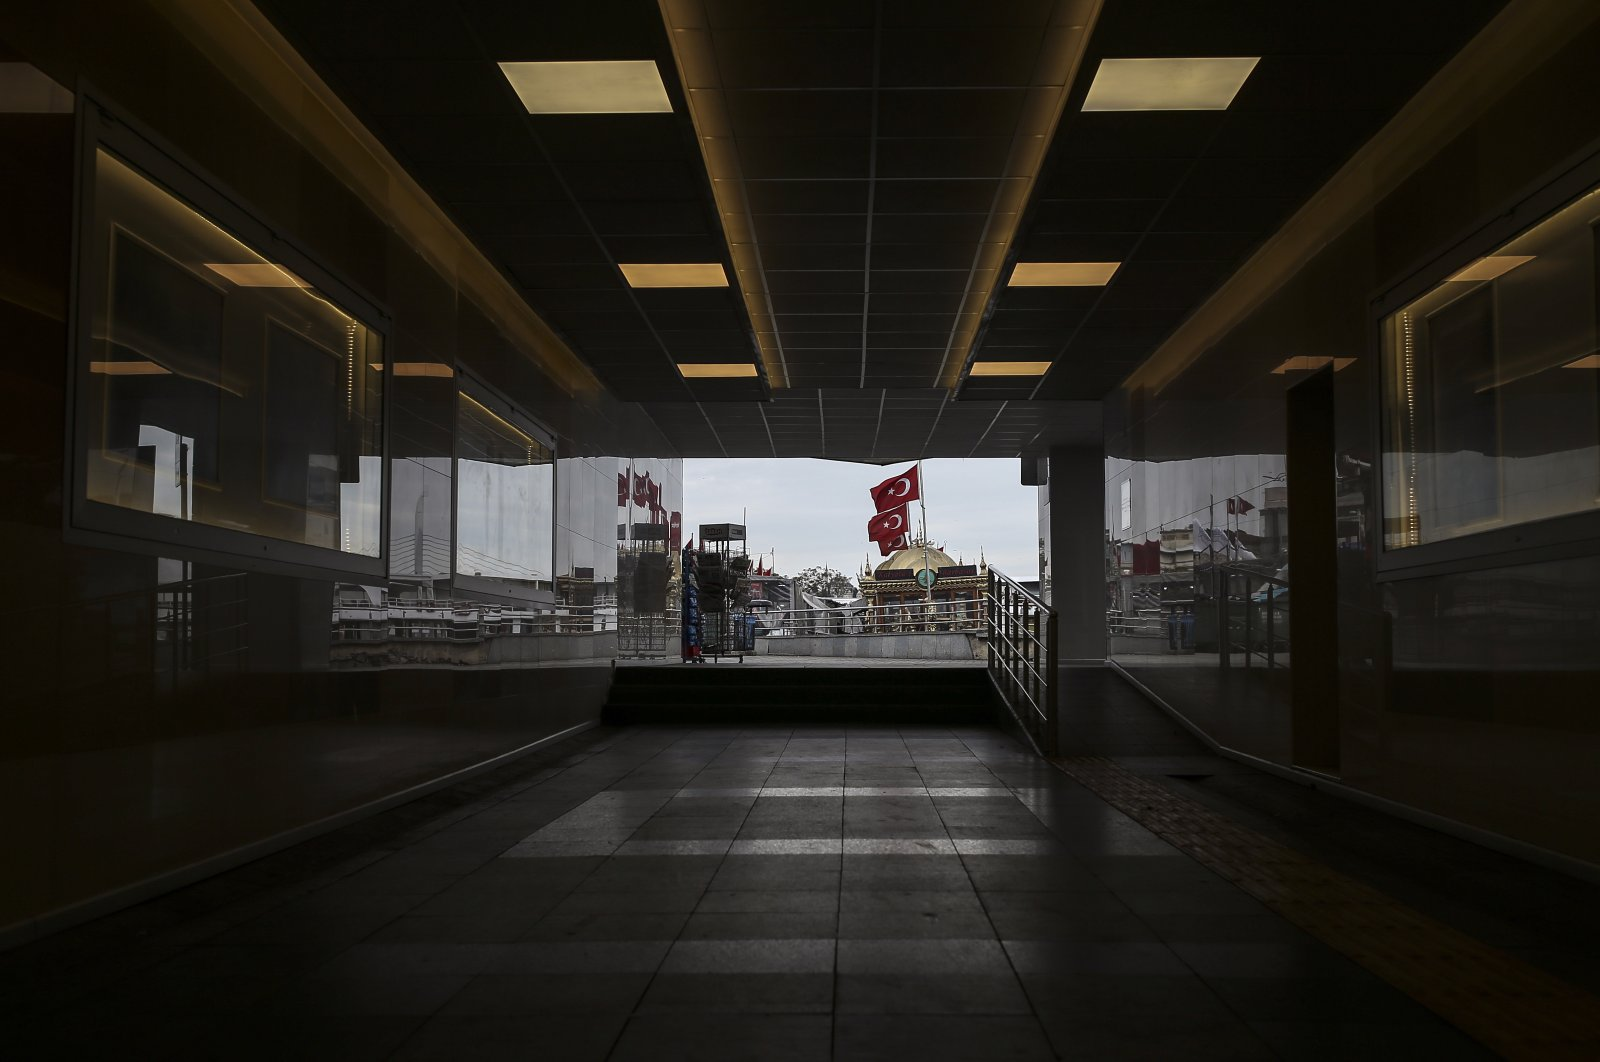 An underpass of the Eminönü market, an area usually packed with shop goers, but currently nearly deserted due to the strict lockdown to help curb the spread of the coronavirus, in Istanbul, Turkey, May 8, 2021. (AP Photo)